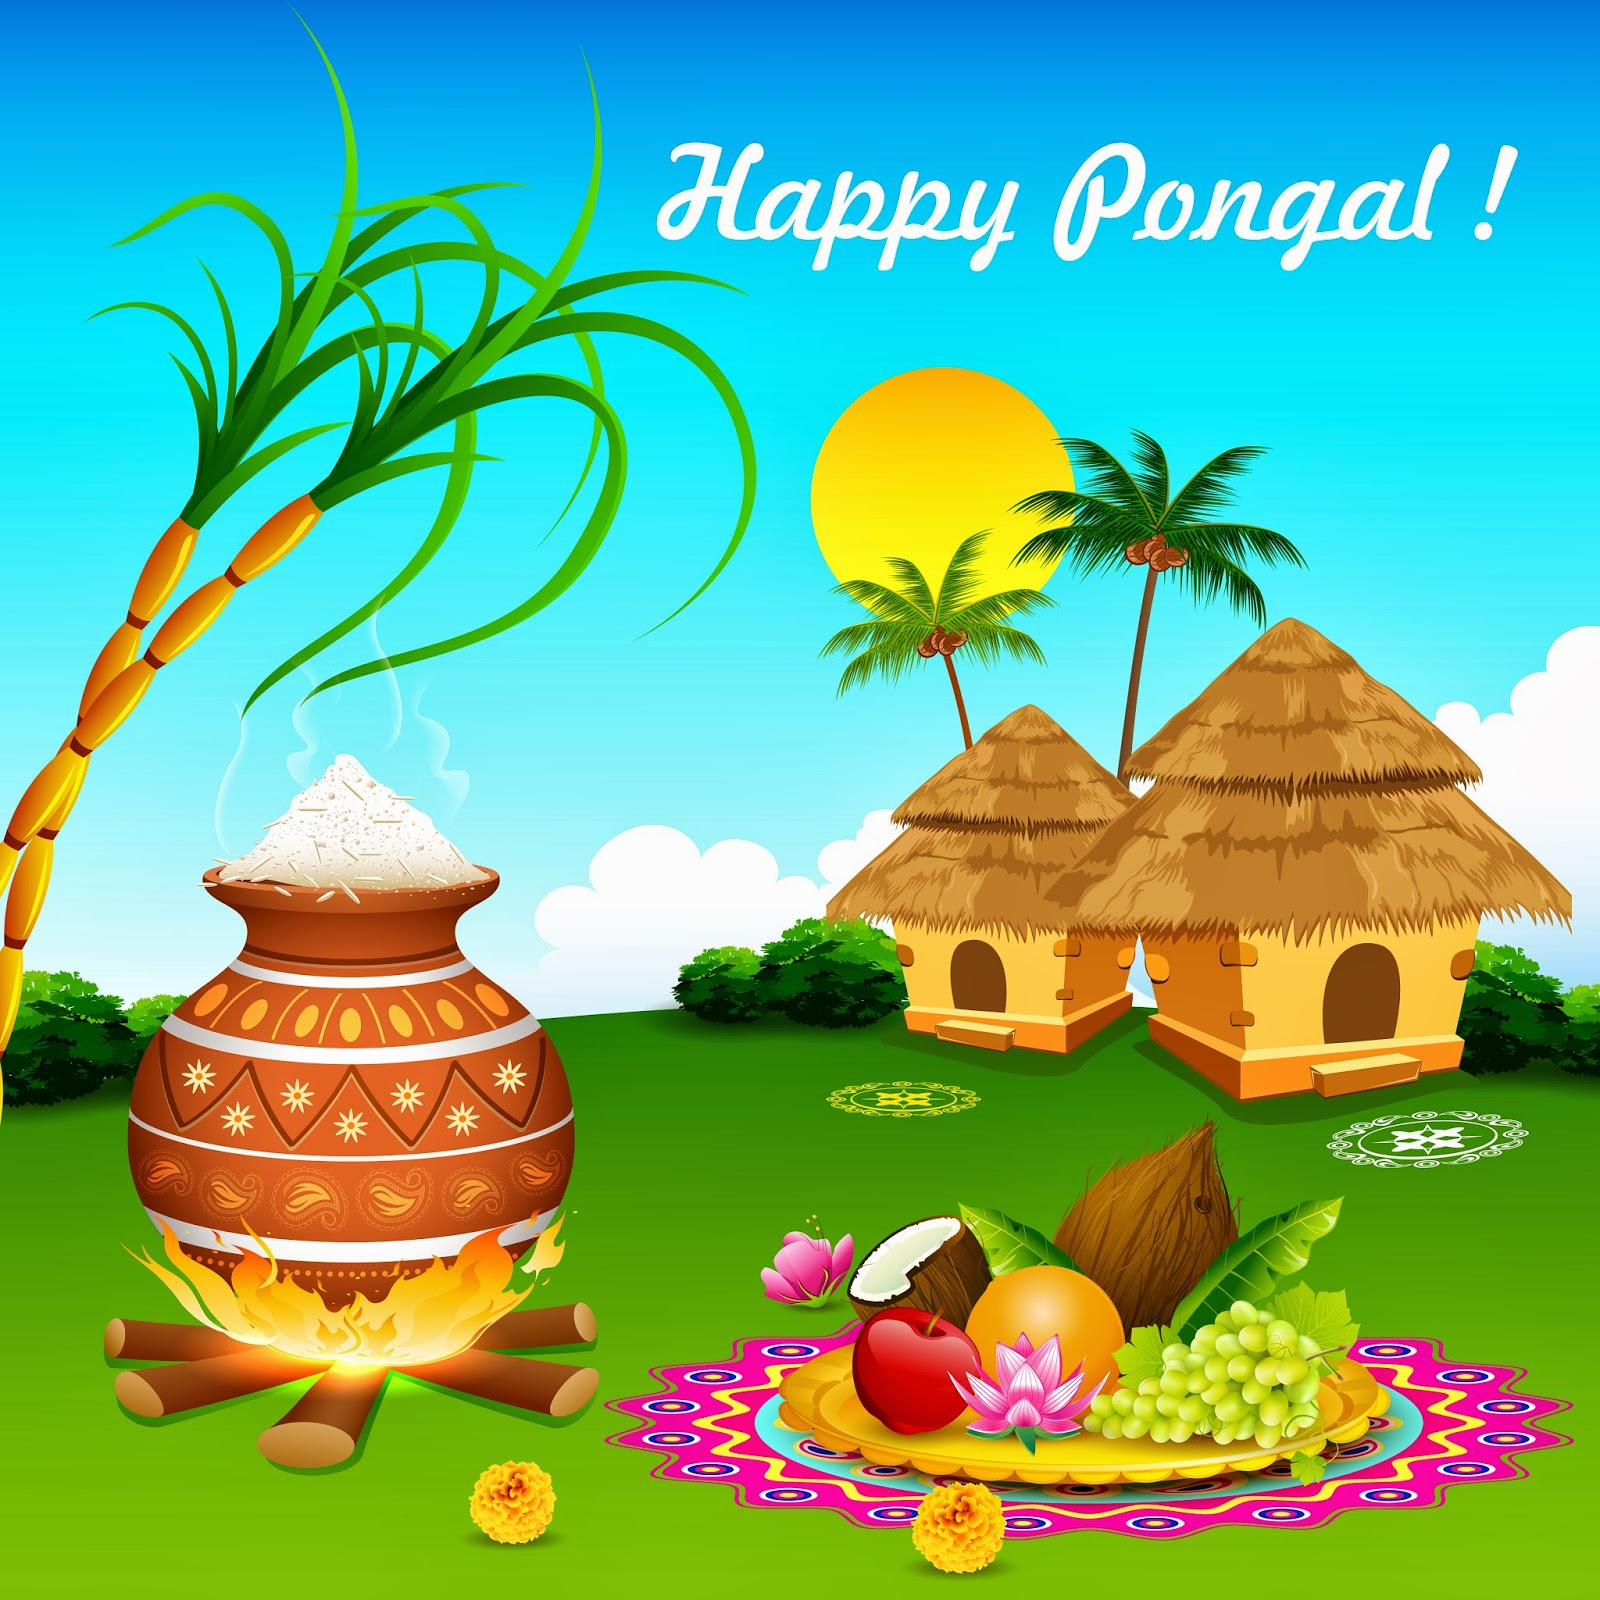 Pongal Picturespongal Graphicspictures Of Pongalpongal Picture